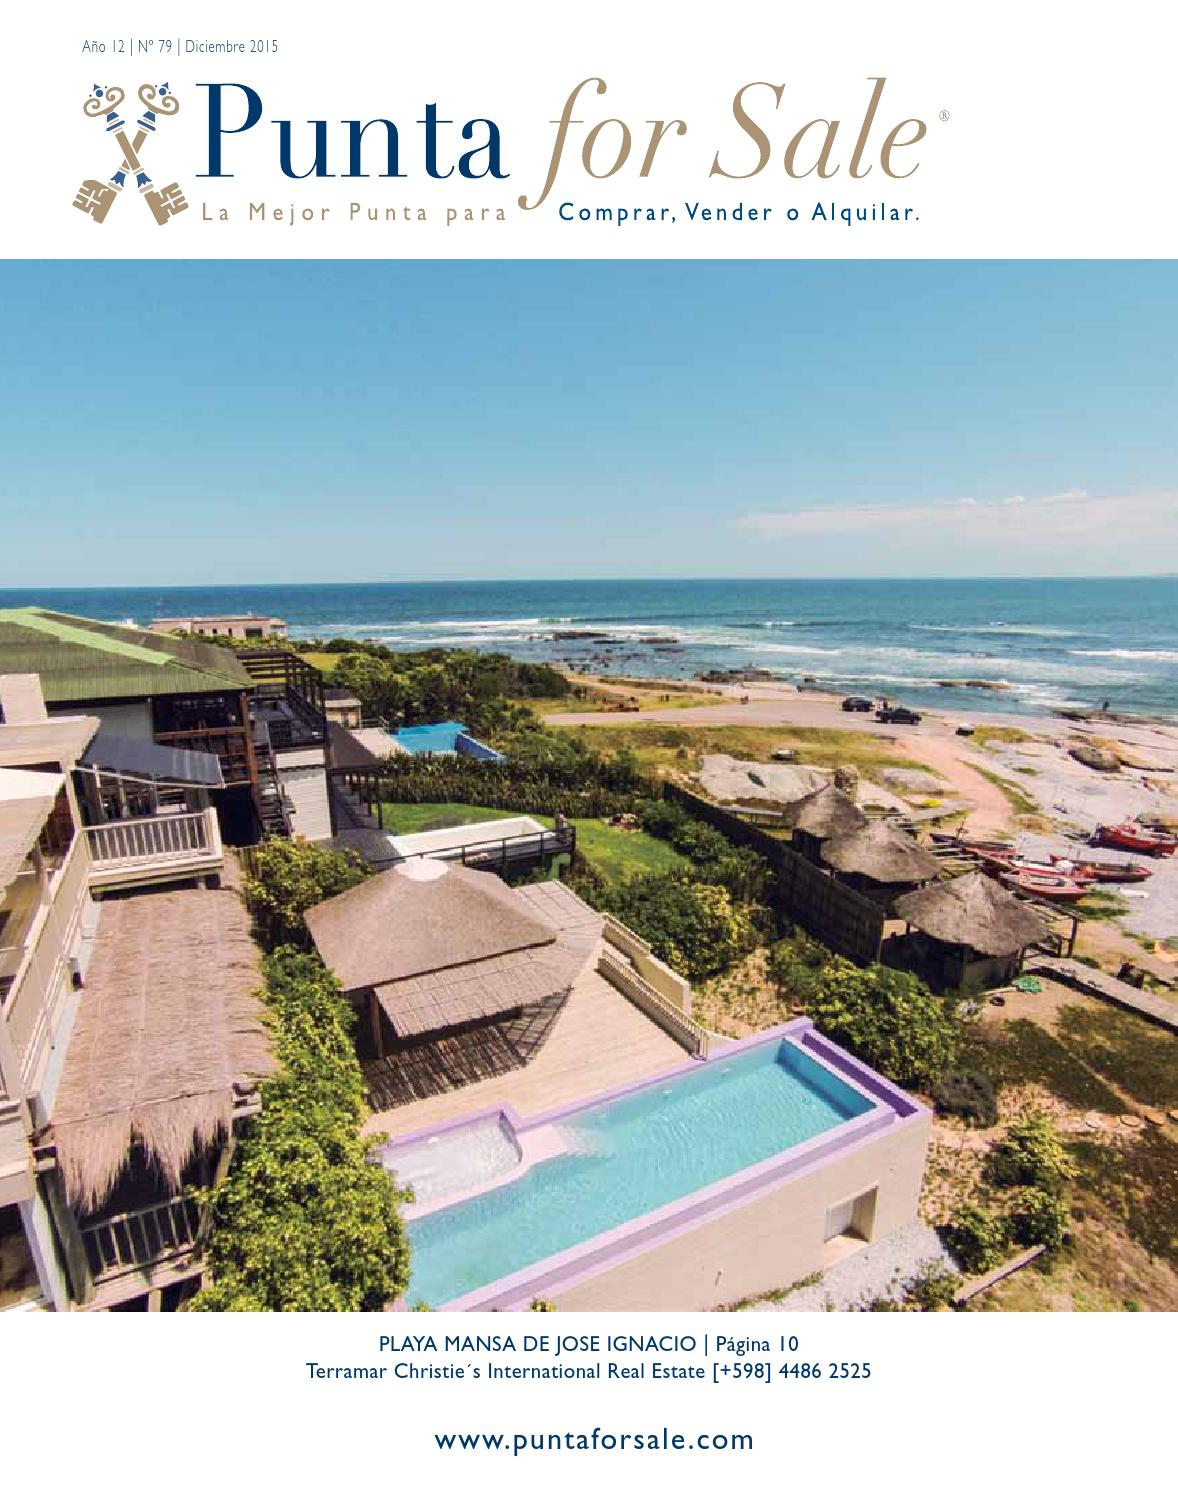 Revista de Real Estate Punta For Sale, edición #79 Diciembre 2015